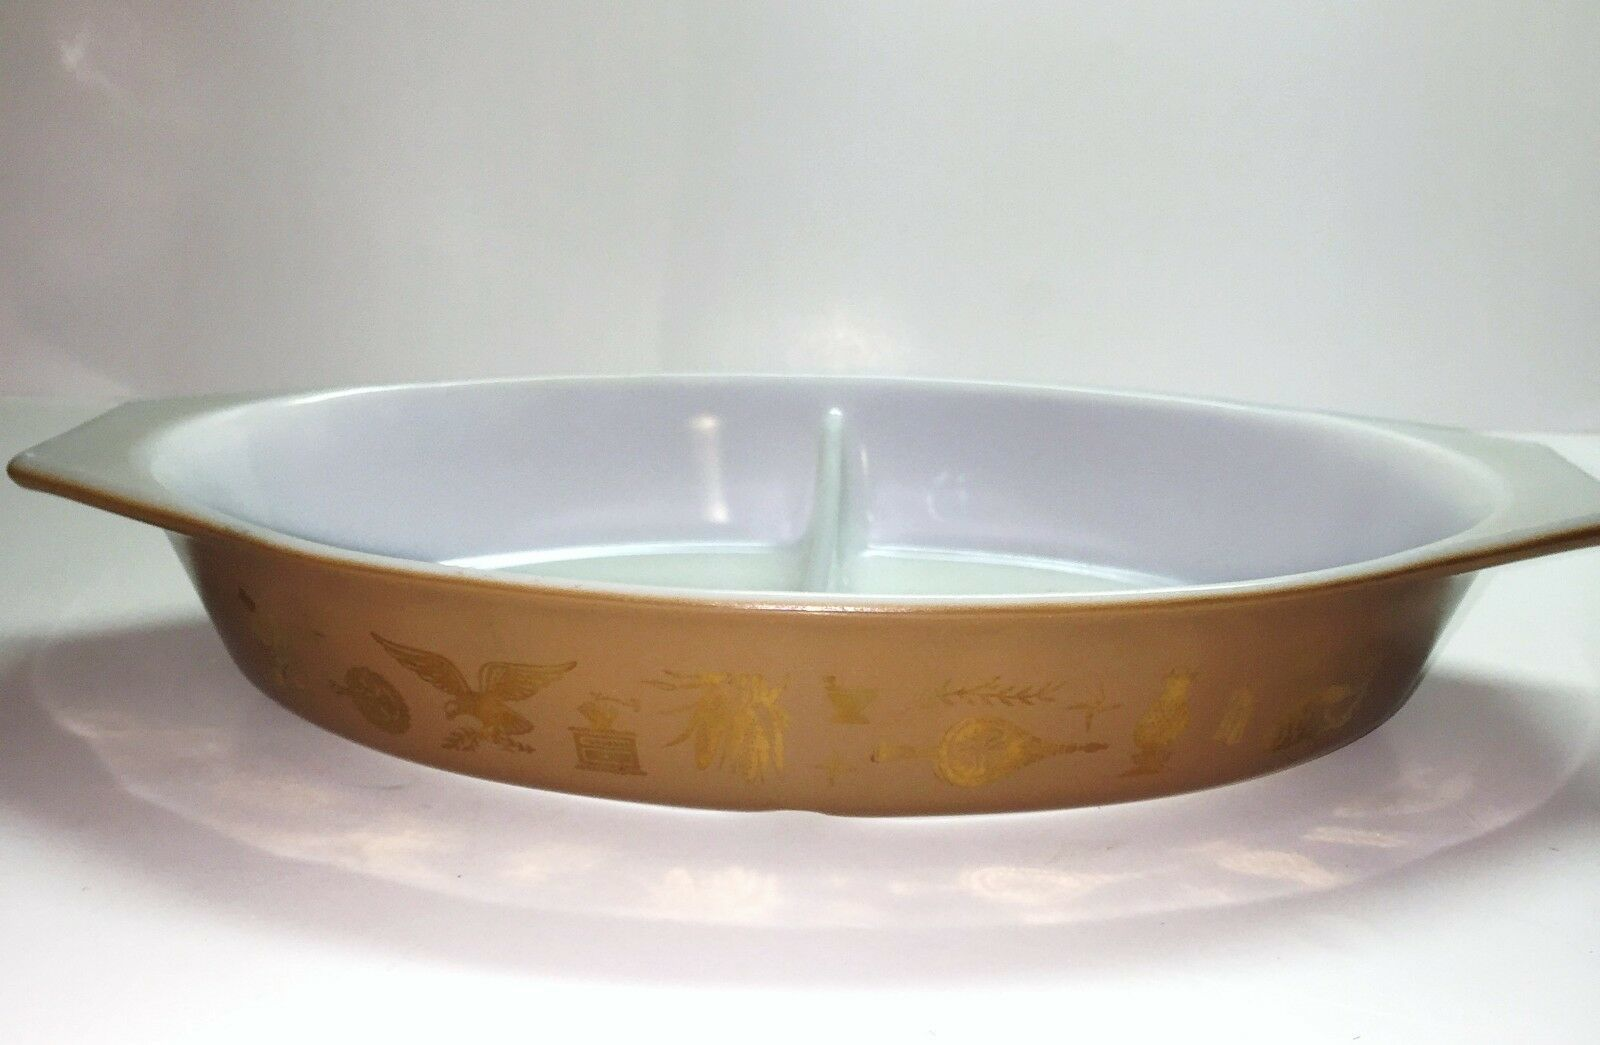 Vintage Pyrex Early American Divided Casserole Dish 1.5 Quart - Brown Gold